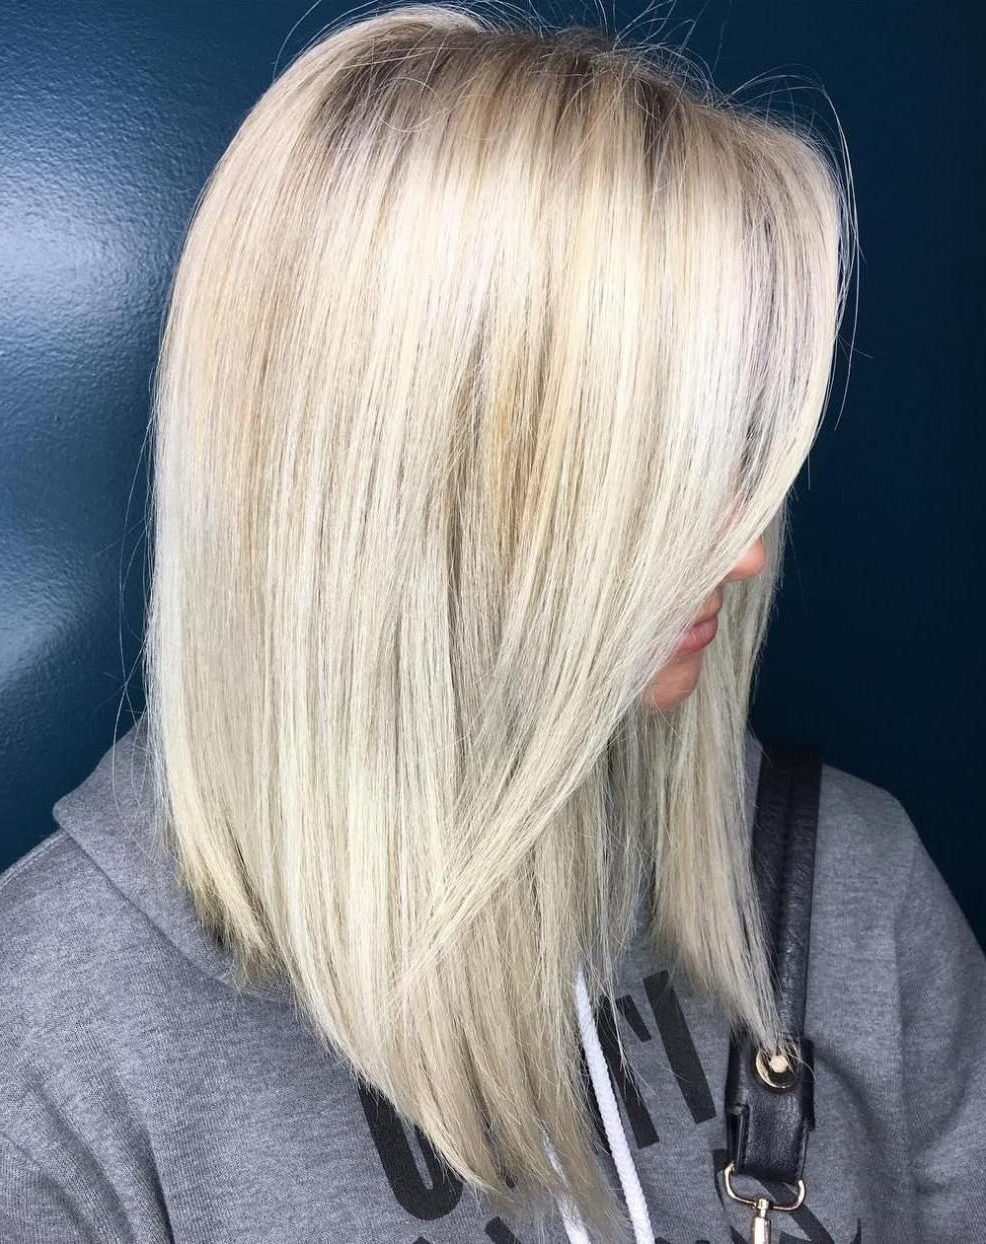 Famous Solid White Blonde Bob Hairstyles Pertaining To 40 Styles With Medium Blonde Hair For Major Inspiration (View 4 of 20)